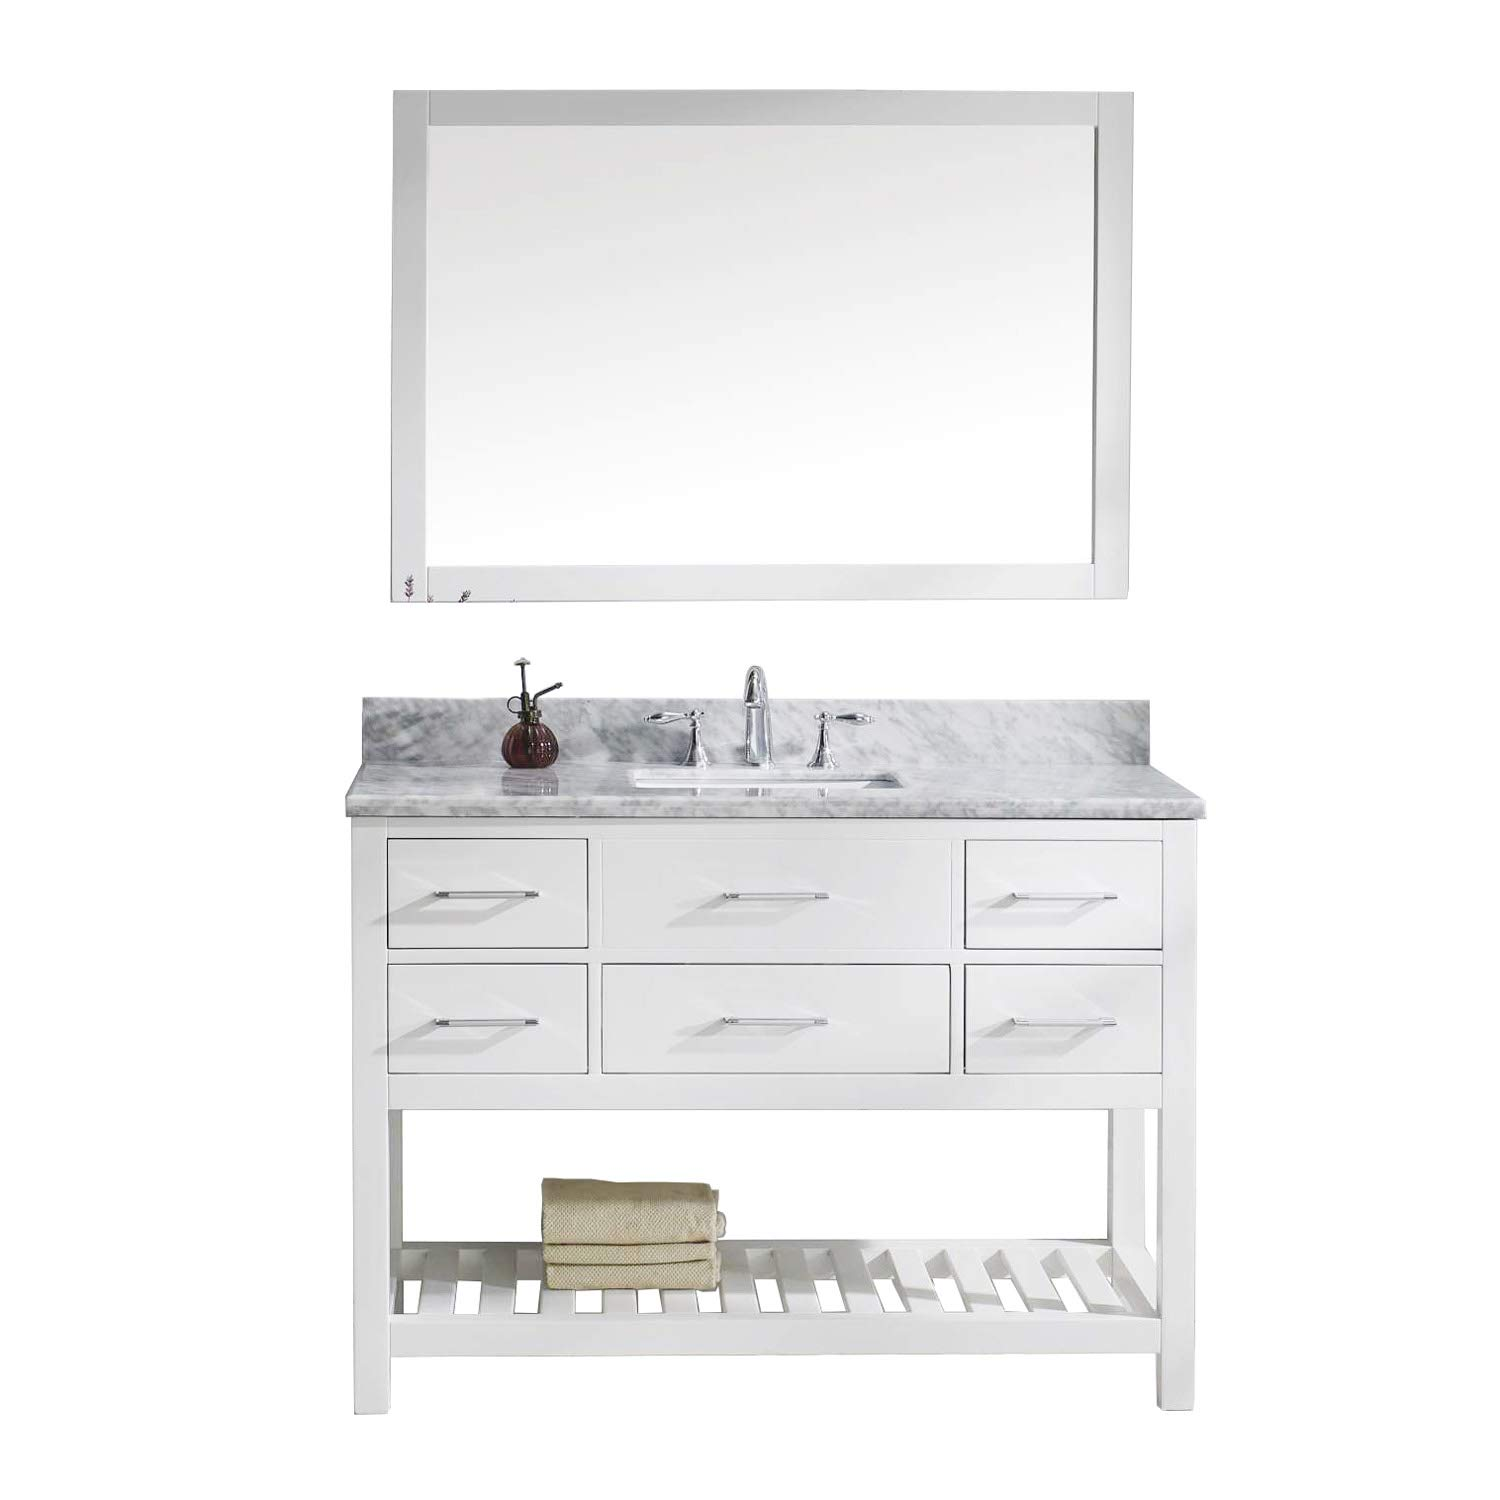 Virtu USA Caroline Estate 48 inch Single Sink Bathroom Vanity Set in White w Square Undermount Sink, Italian Carrara White Marble Countertop, No Faucet, 1 Mirror – MS-2248-WMSQ-WH